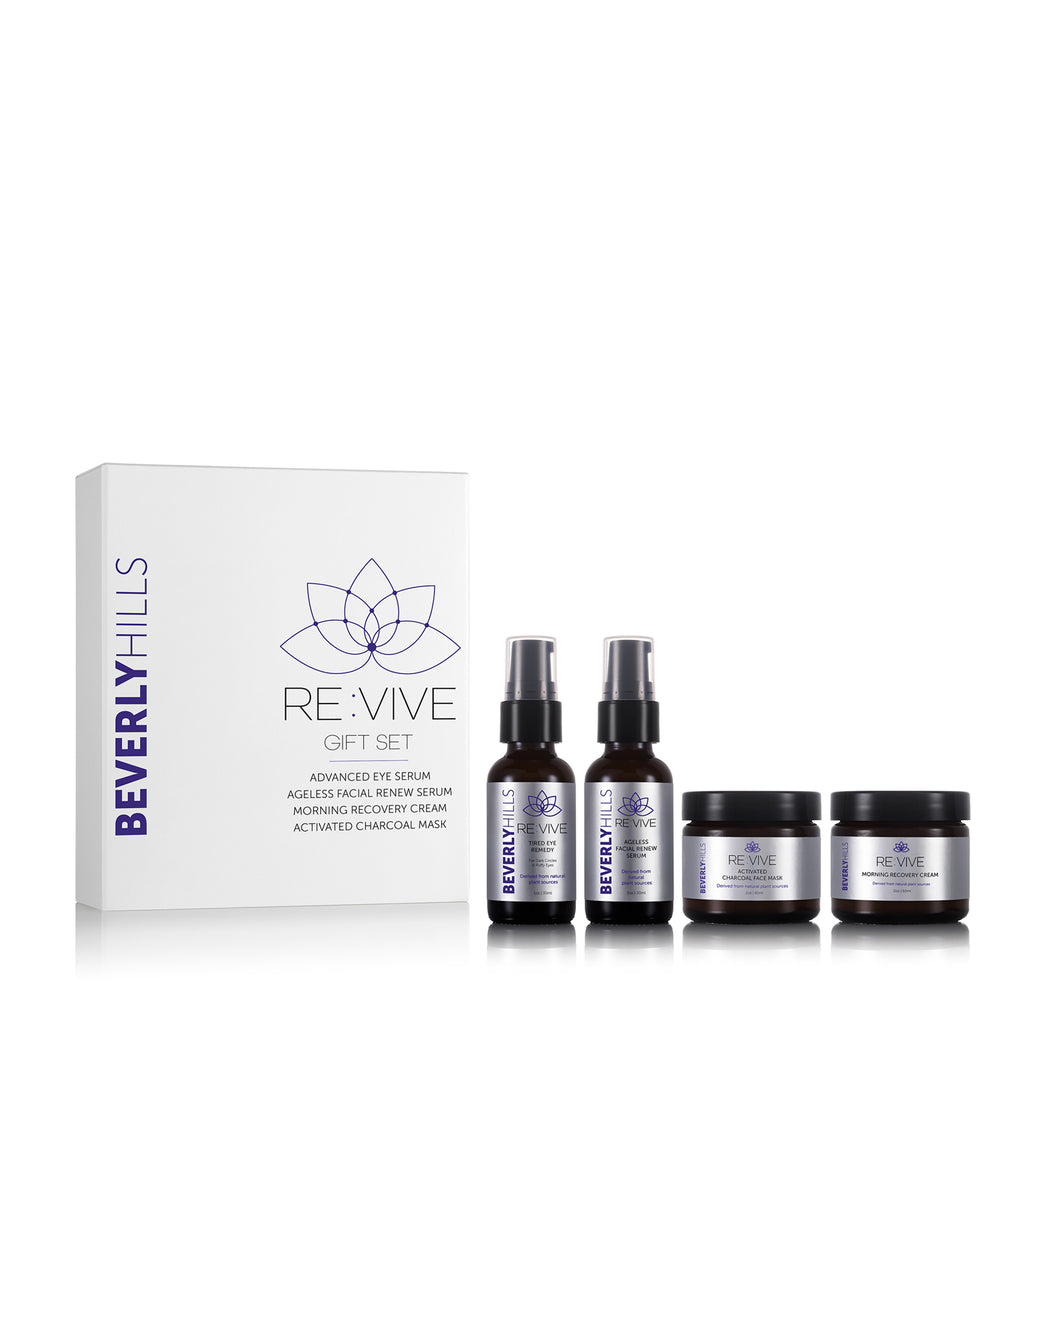 Beverly Hills Revive Gift Set - MD3 Advanced Skin Care